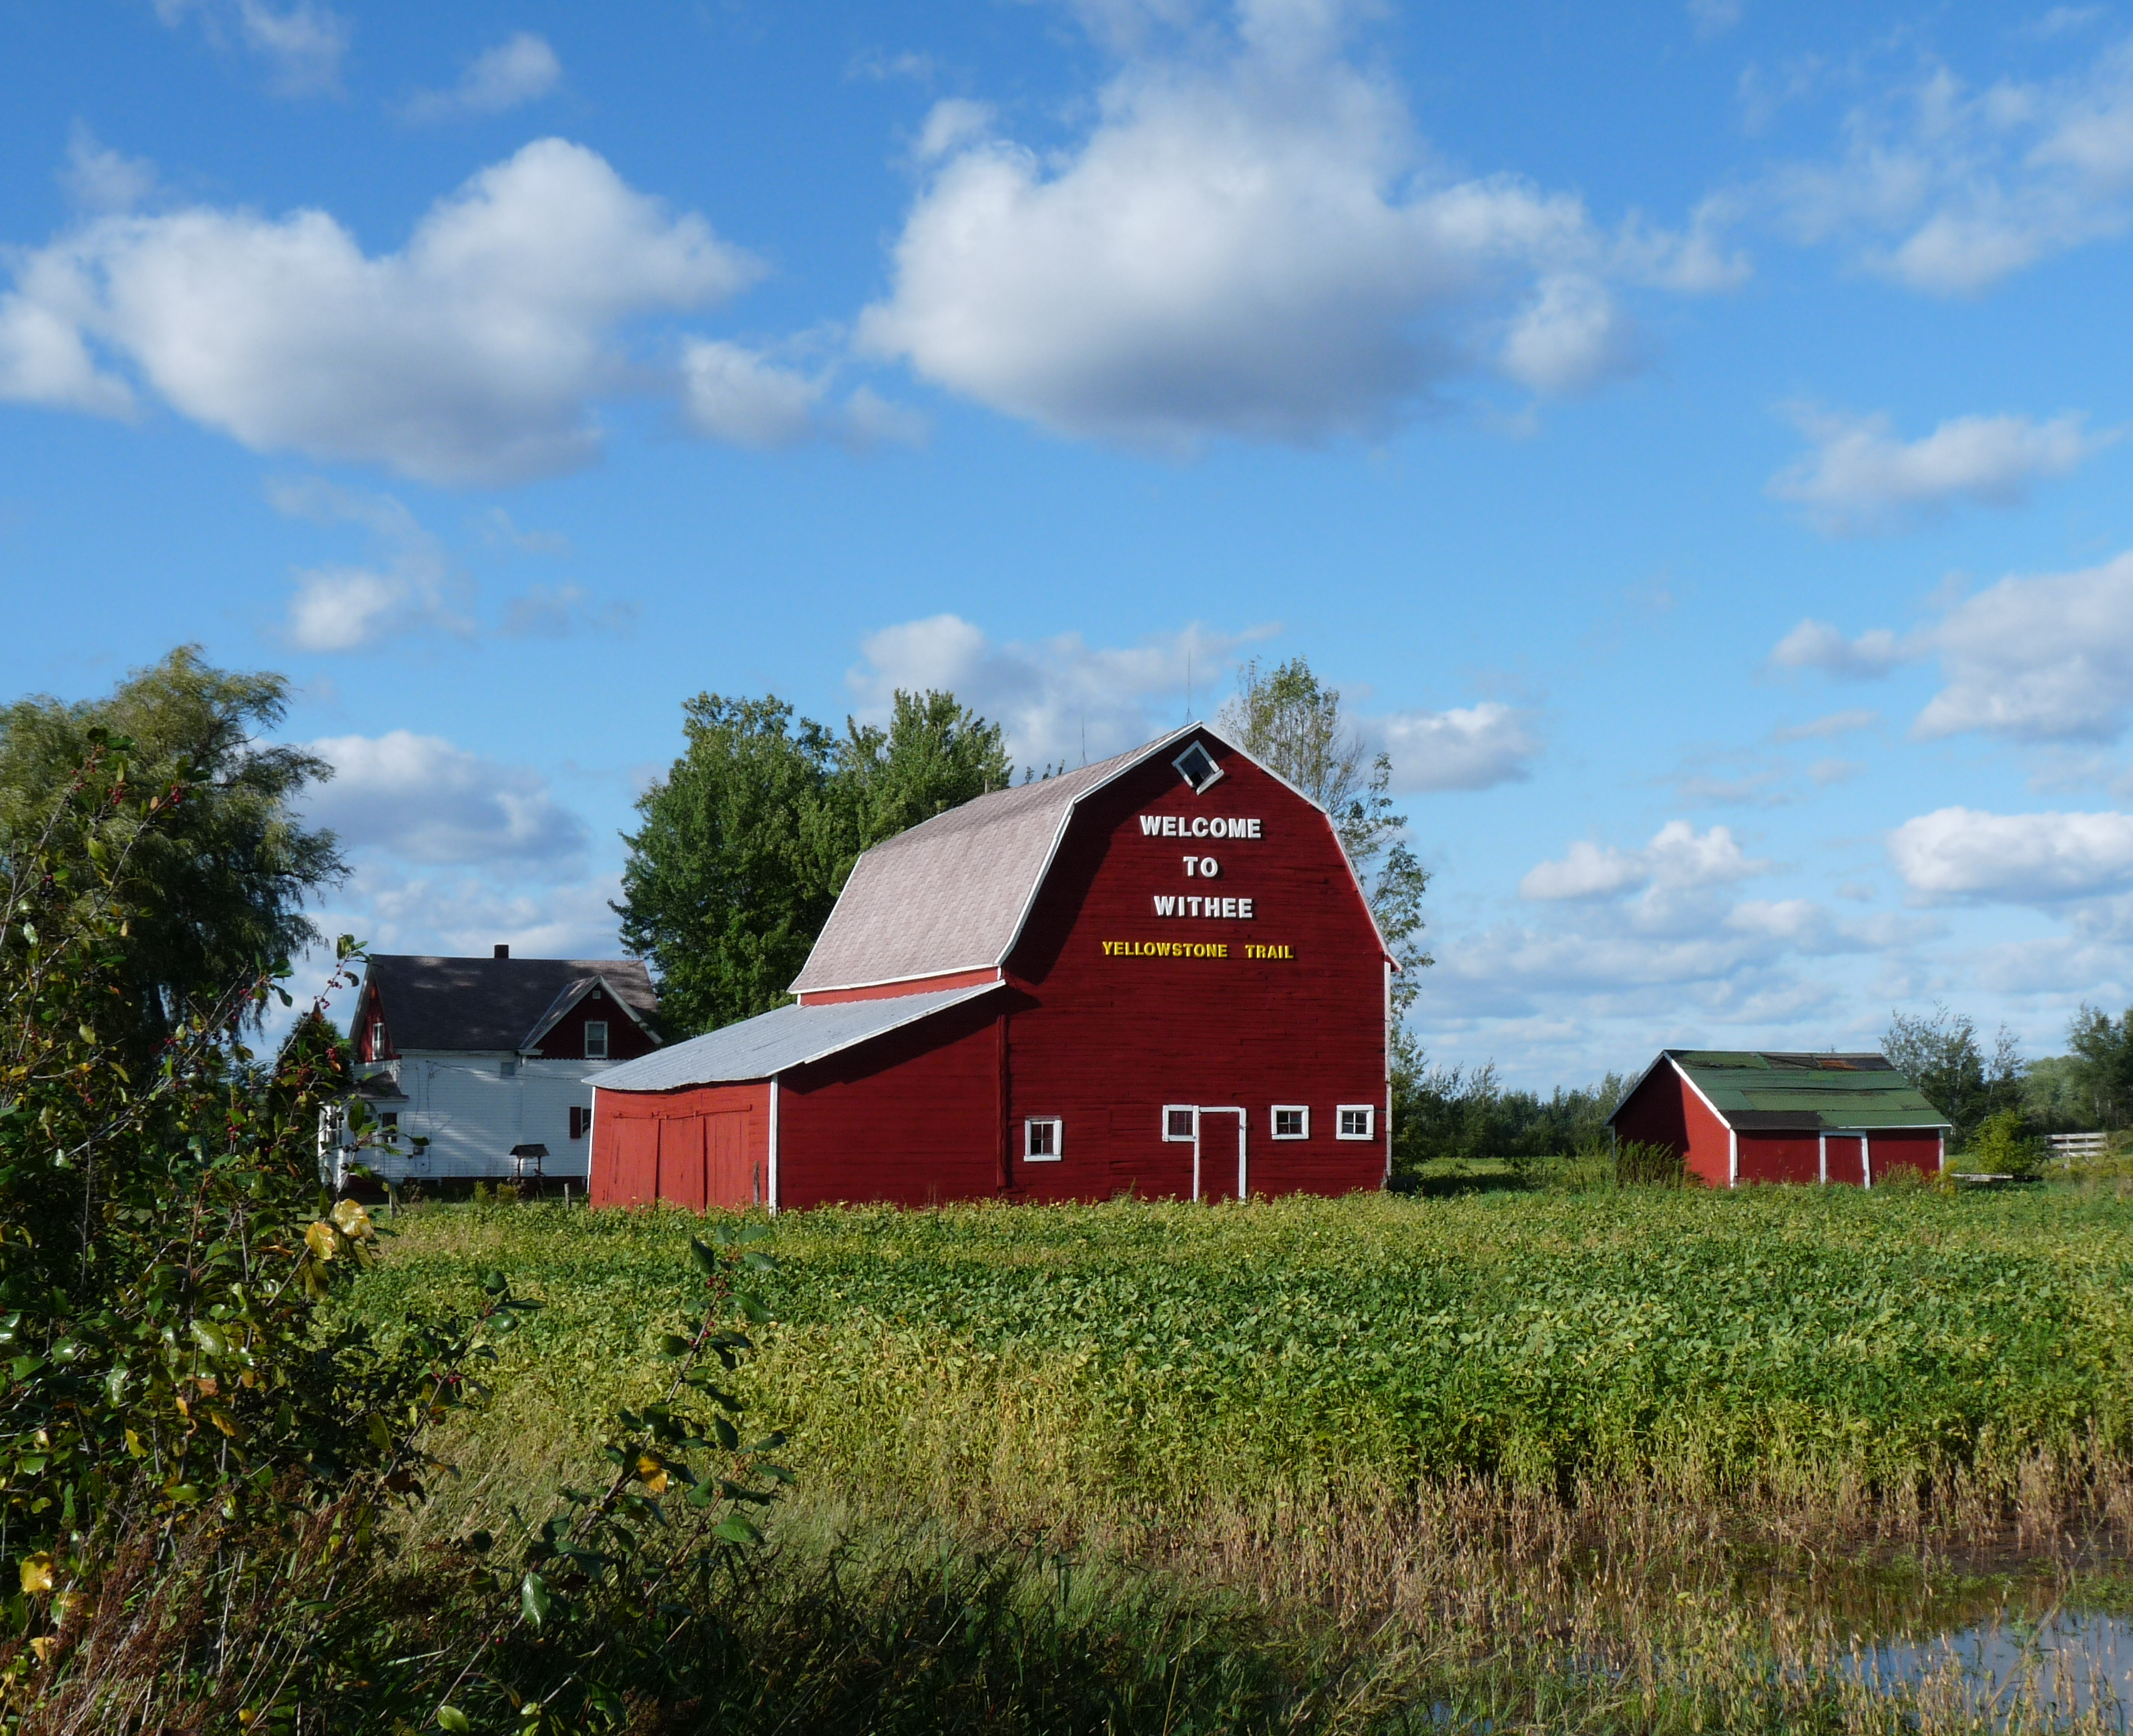 Farm south of Withee, Wisconsin. Wikipedia image